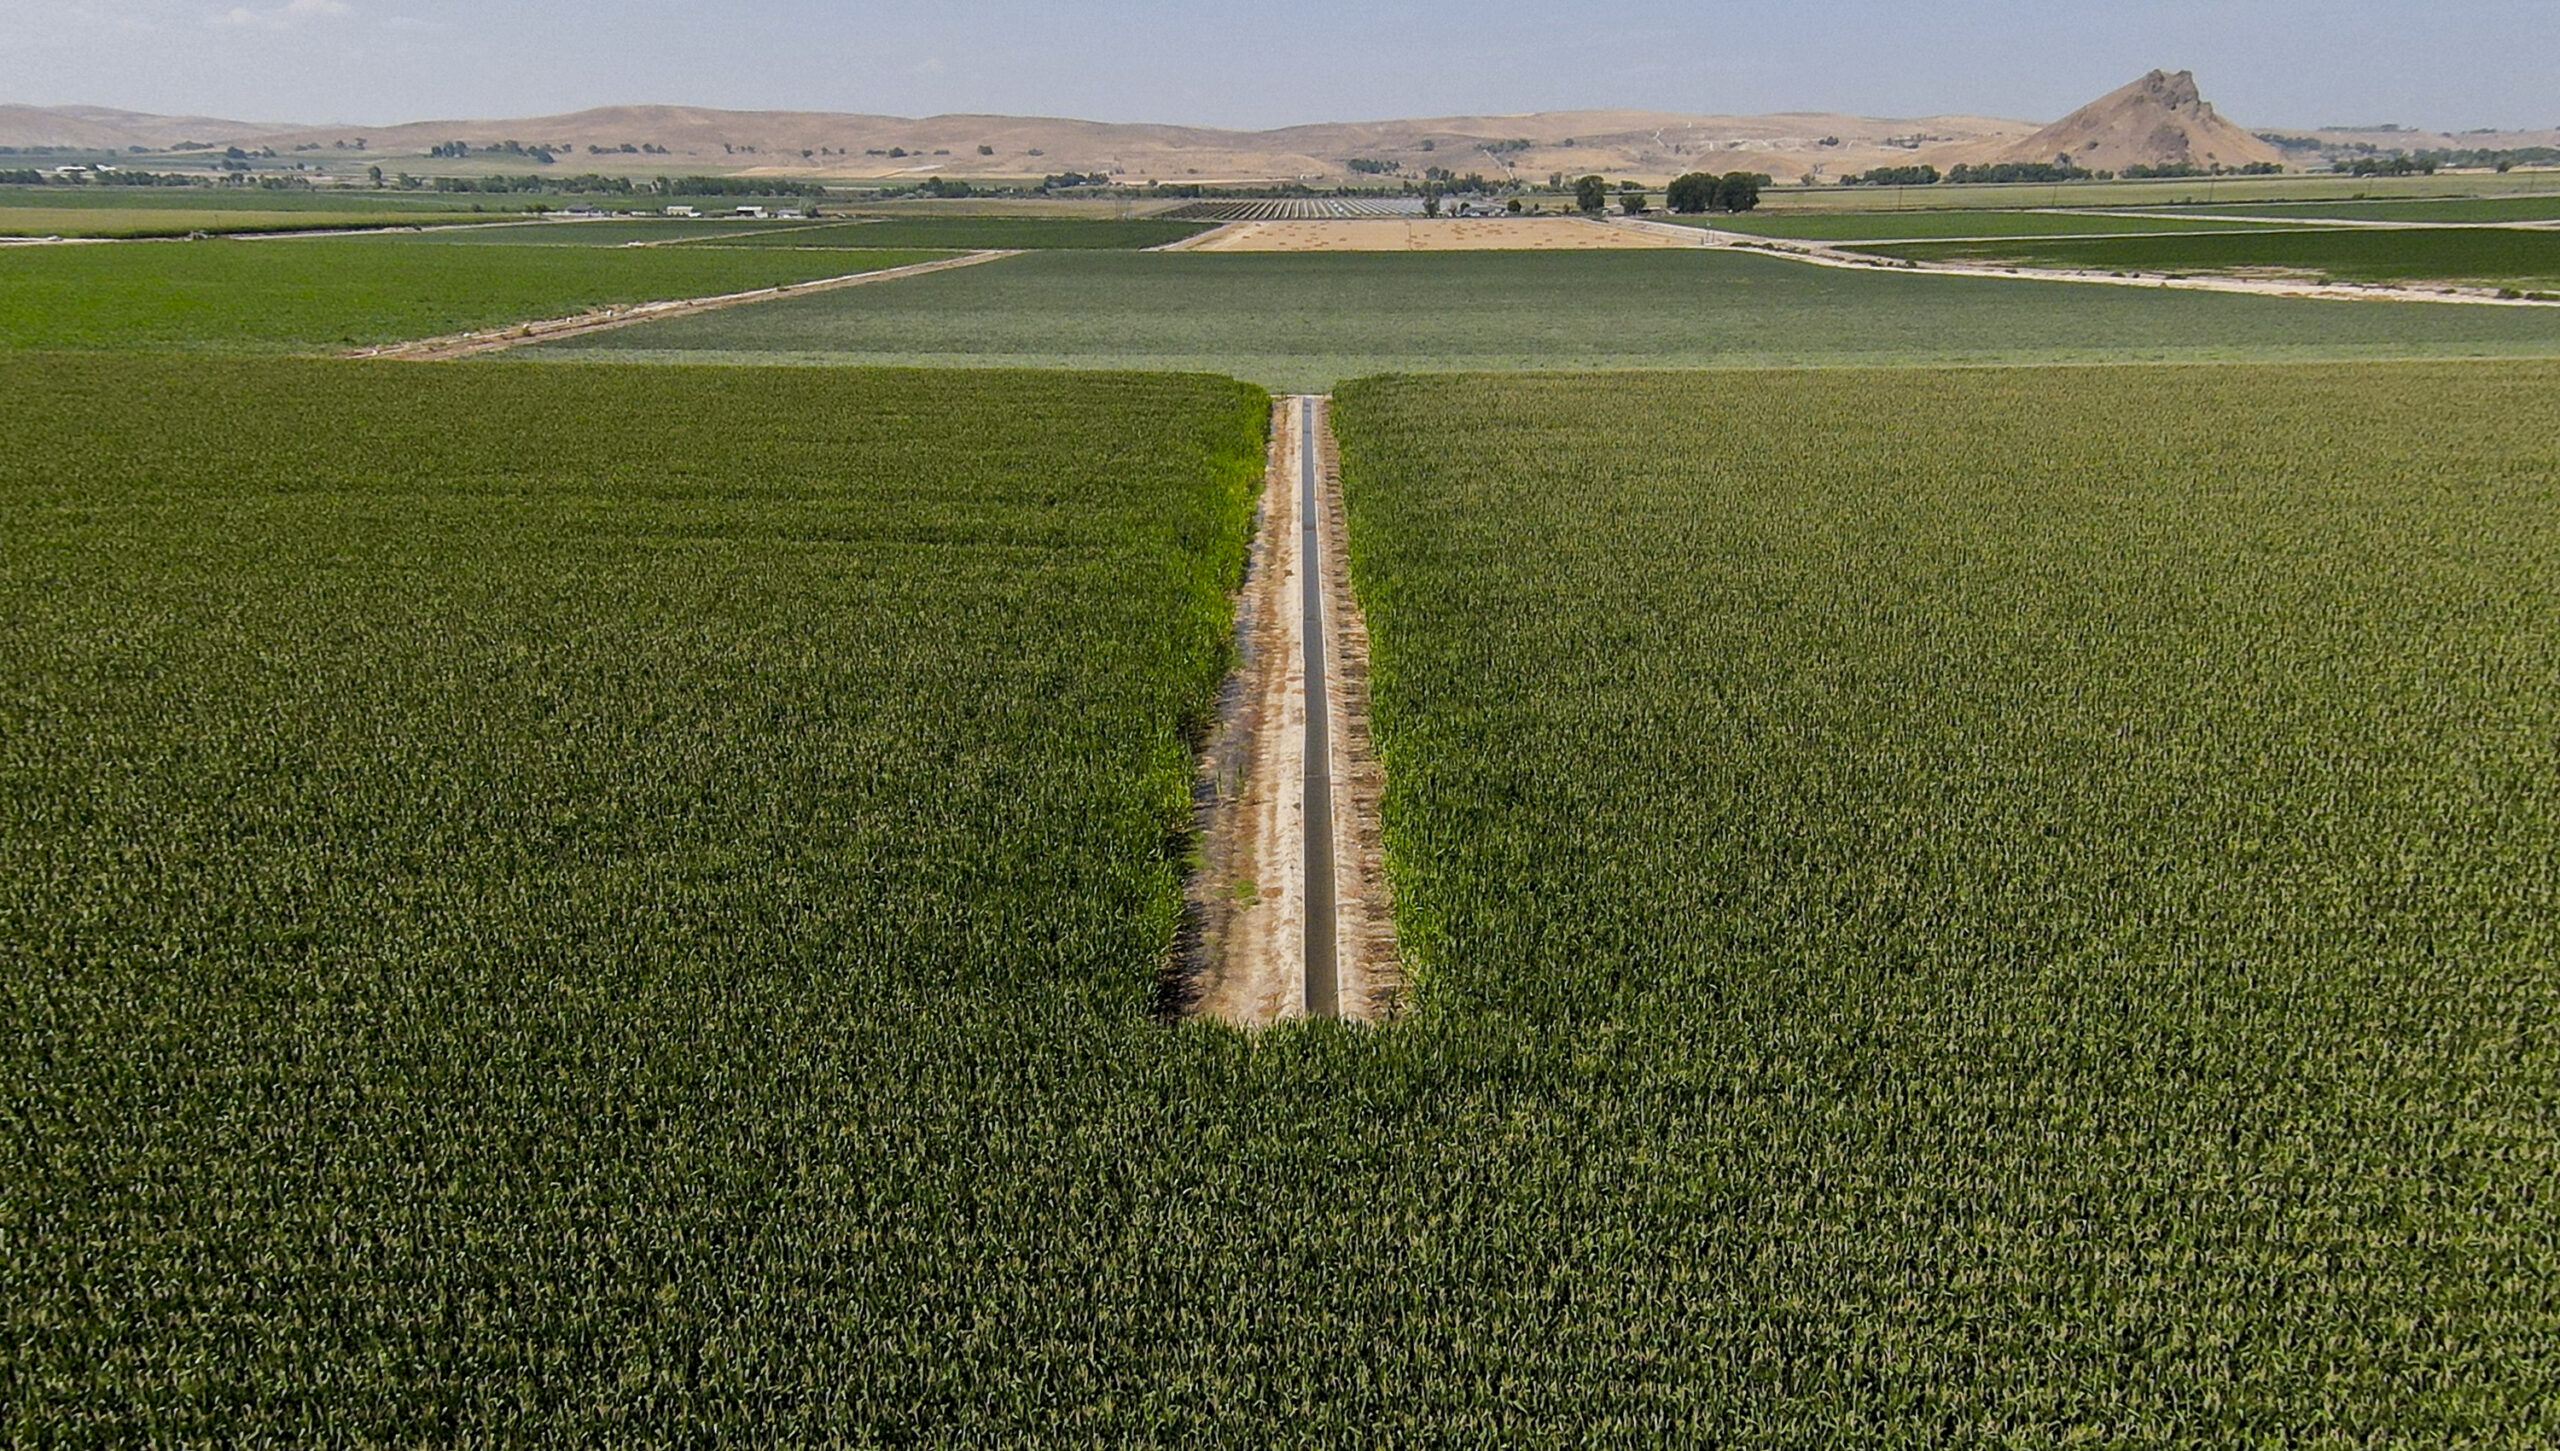 New plan from Global Warming Commission relies on farms, forests to absorb emissions